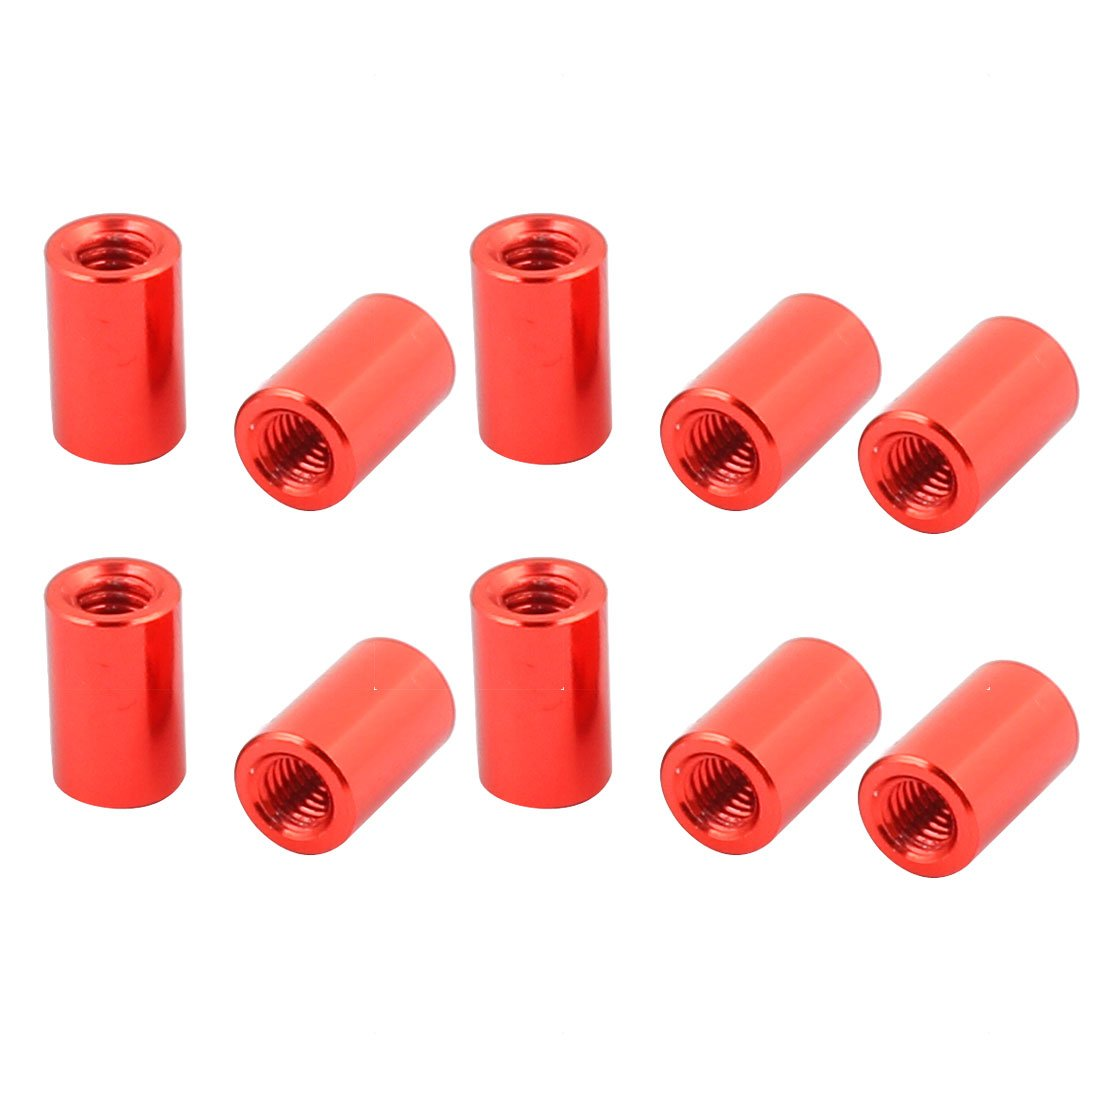 sourcingmap® 10 Pcs M3 x 8mm Round Aluminum Column Alloy Standoff Spacer Stud Fastener for Quadcopter Red SYNCTEA044430